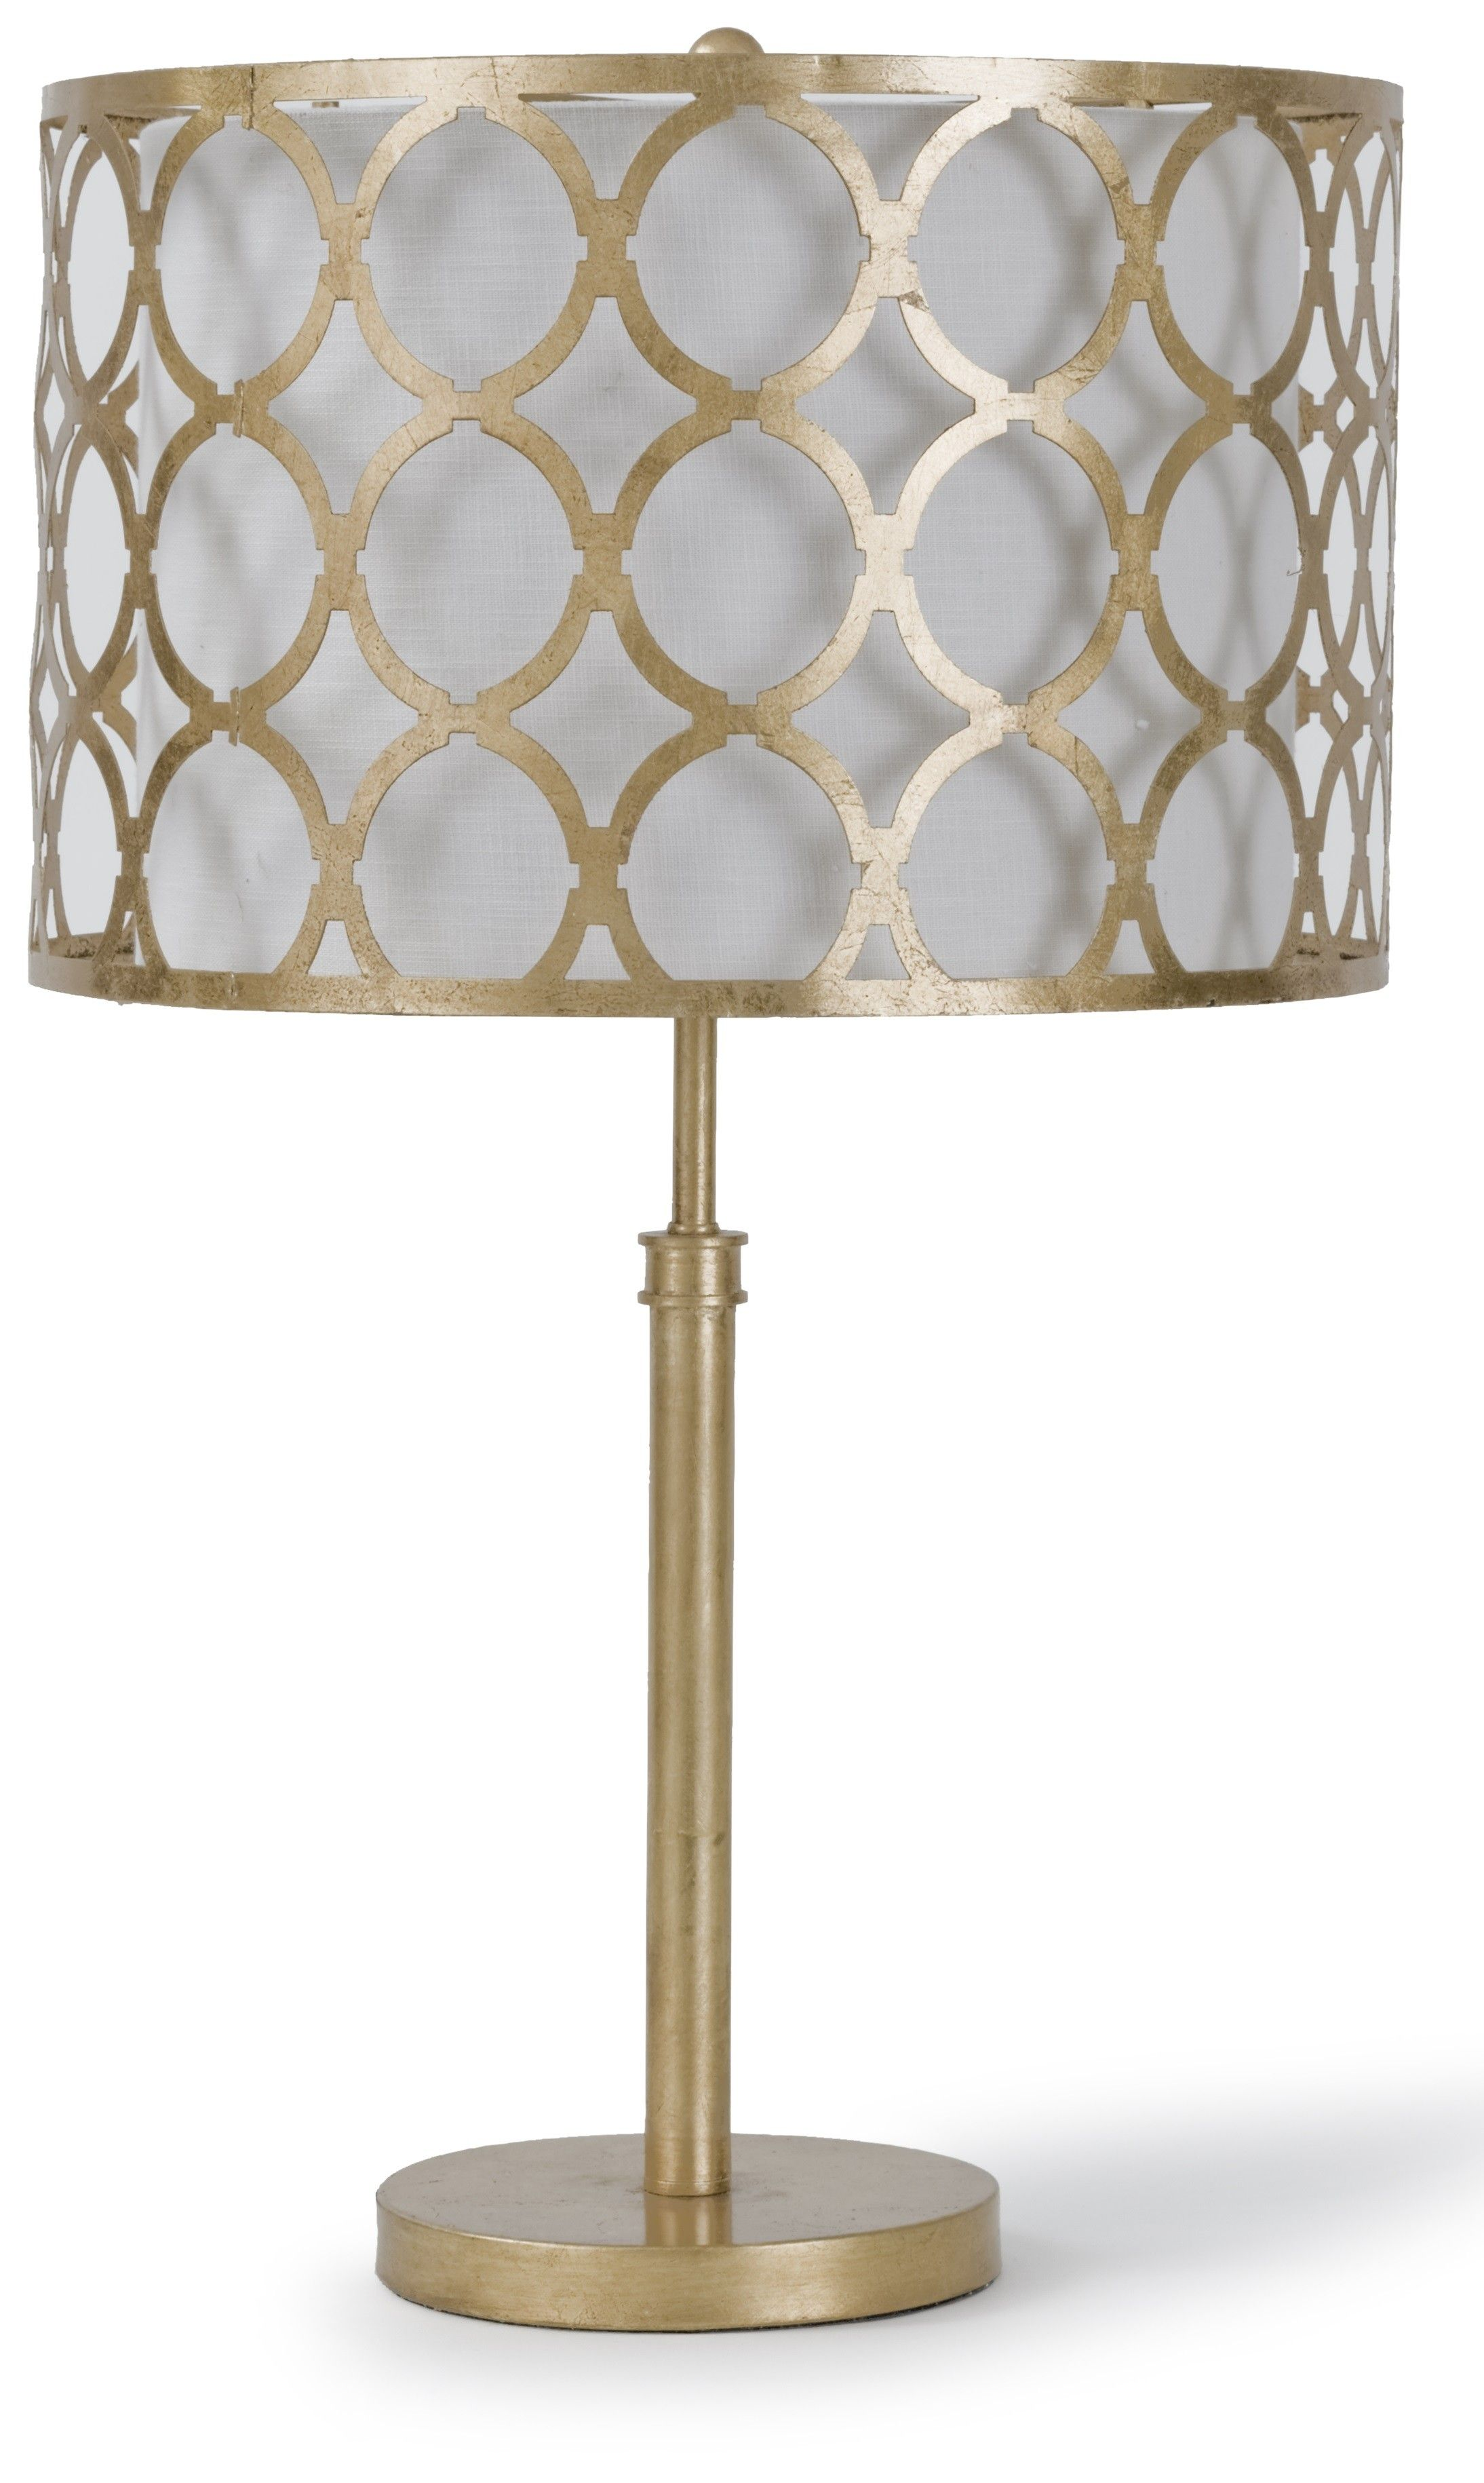 Regina andrew gold metal table lamp with patterned shade from the regina andrew gold metal table lamp with patterned shade from the well appointed house mozeypictures Gallery